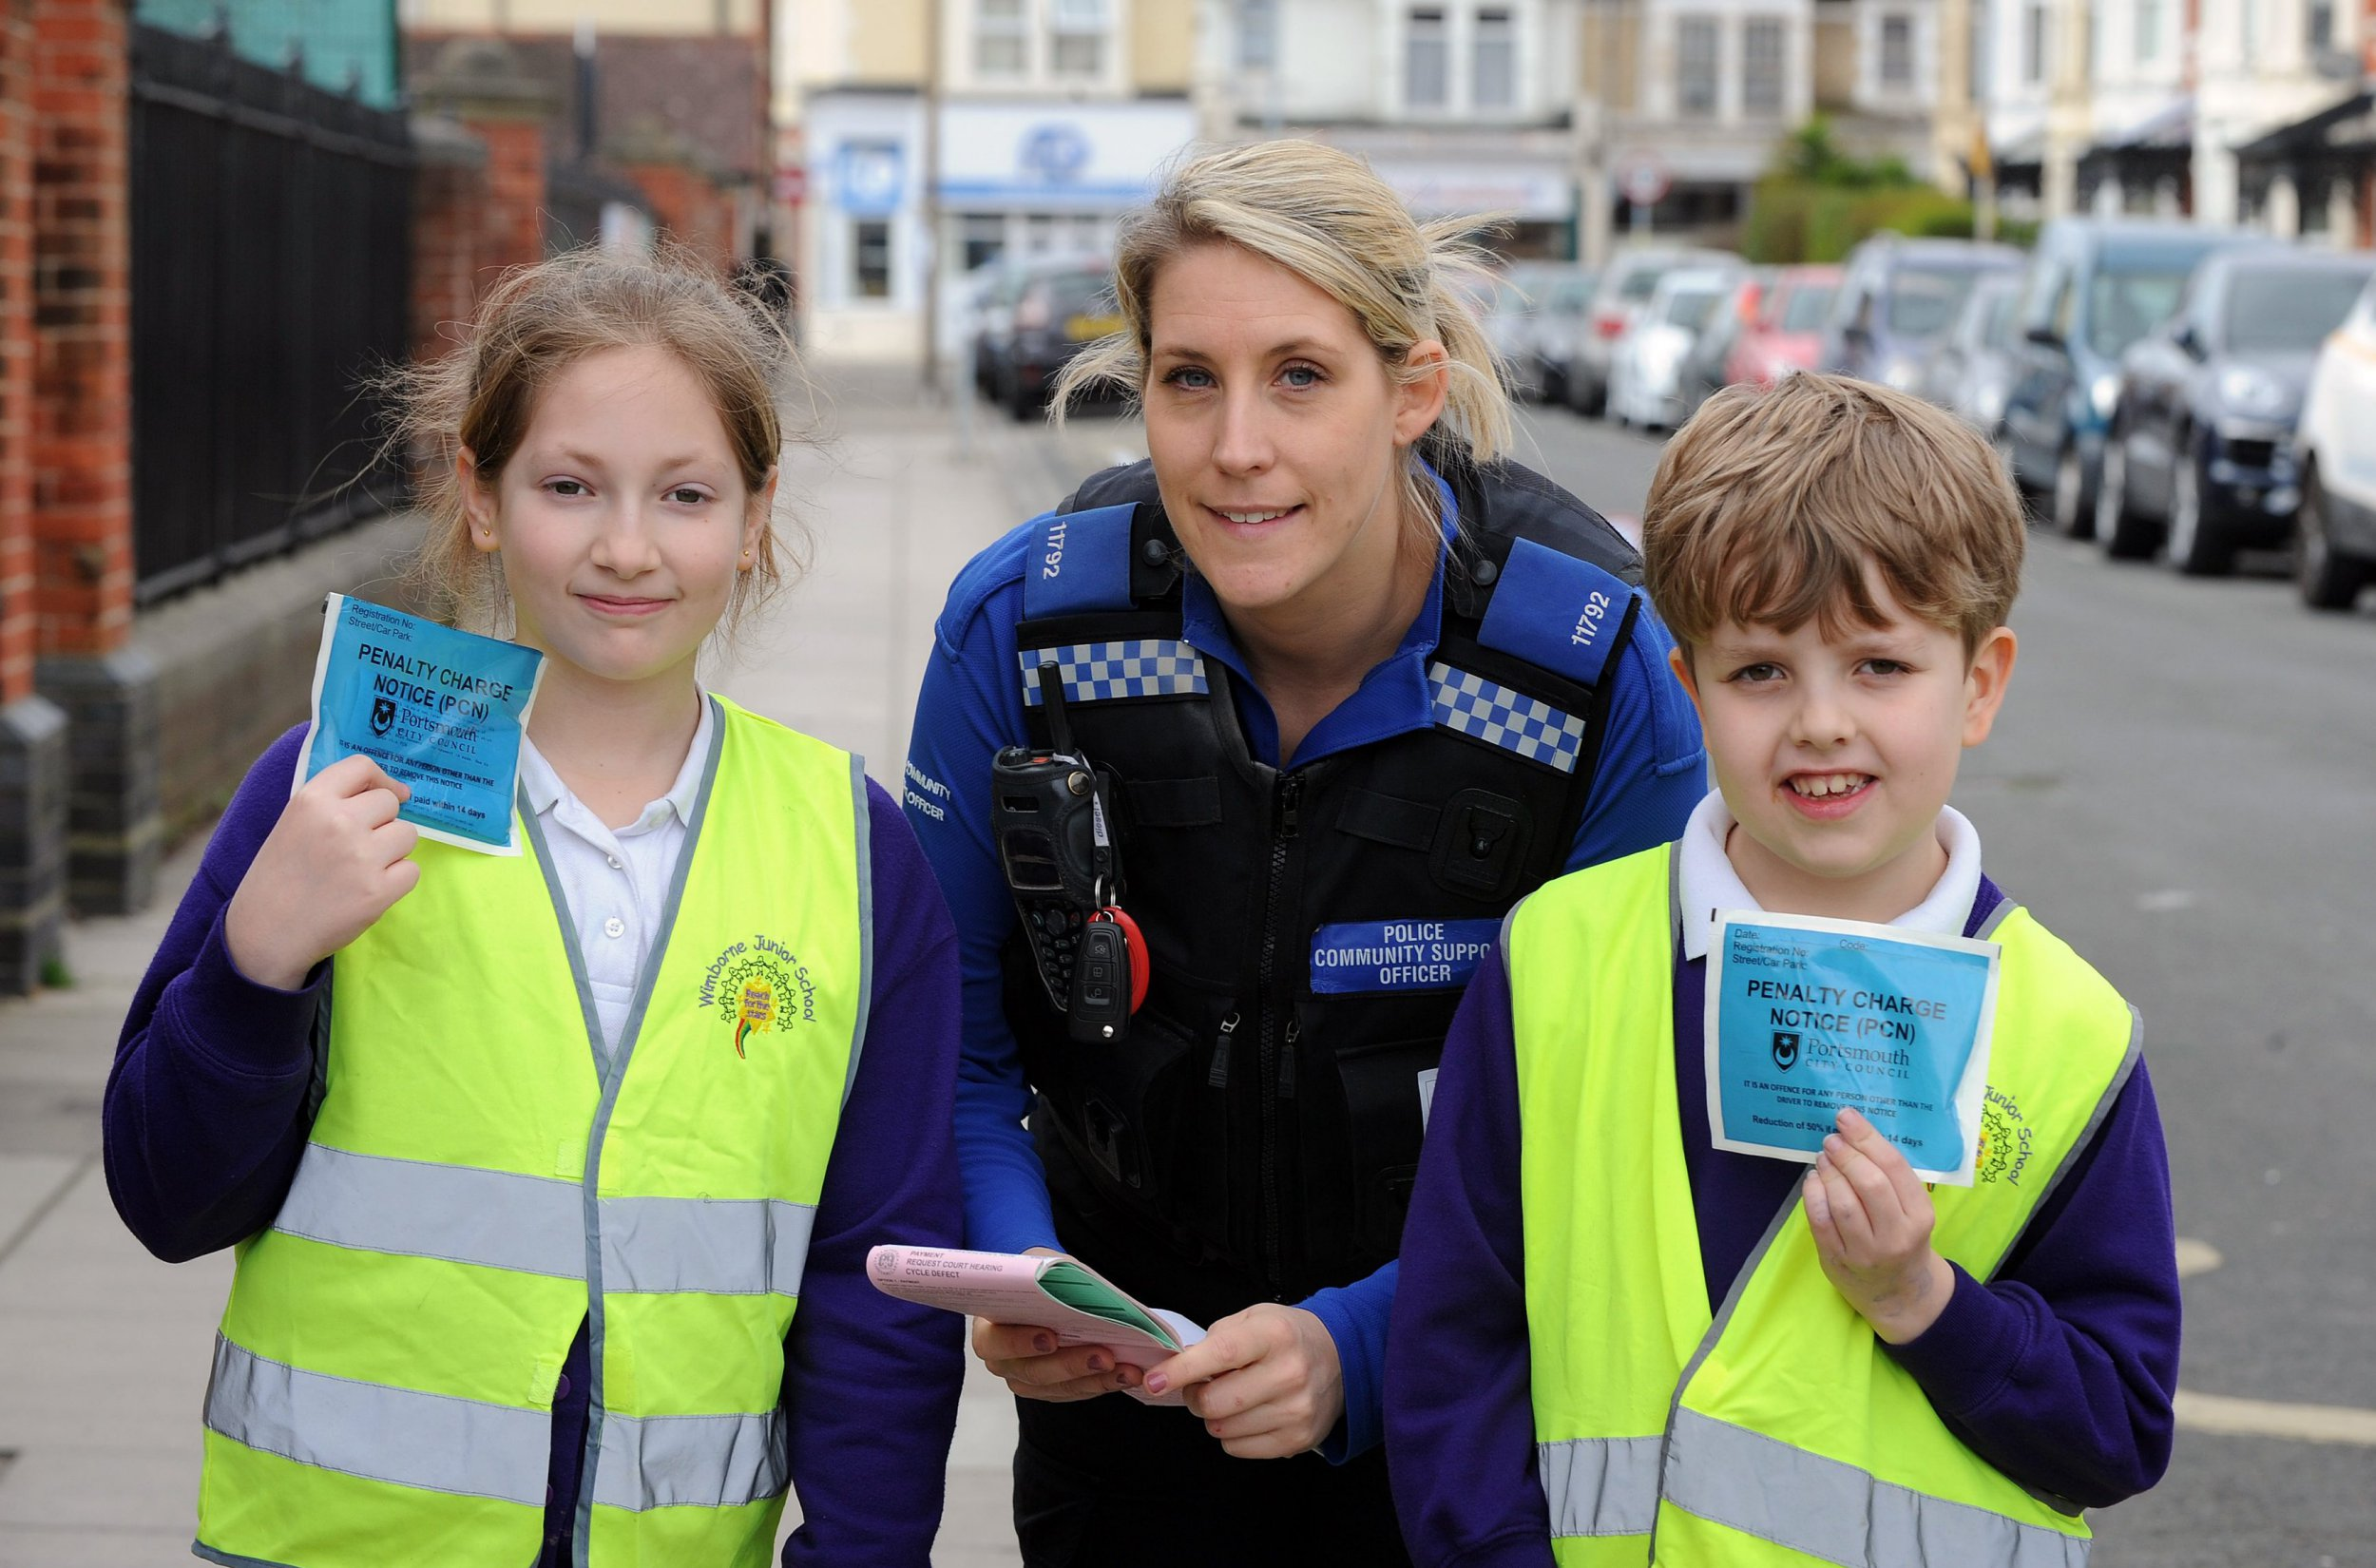 Pictured: PCSO Susan Smith with (left) Hannah-Elissa Badnell (10) and Josh Ost (8). Council chiefs in one of the UK's worst-polluted cities are considering banning cars from school roads in a bid to improve air quality. Environmentalists in Portsmouth, Hants, are in talks with councillors and have urged them to shut school roads to traffic during drop-off and pick-up times. The city has come under fire for its worrying pollution levels and currently faces having a Clean Air Zone imposed, which could force drivers to pay up to ?8 a day to use their cars. The latest readings of dangerous nitrous dioxide (NO2) in Portsmouth show that 16 areas in the city are above the 'safe' level - up from four in 2017. SEE OUR COPY FOR DETAILS. ? Portsmouth News/Solent News & Photo Agency UK +44 (0) 2380 458800